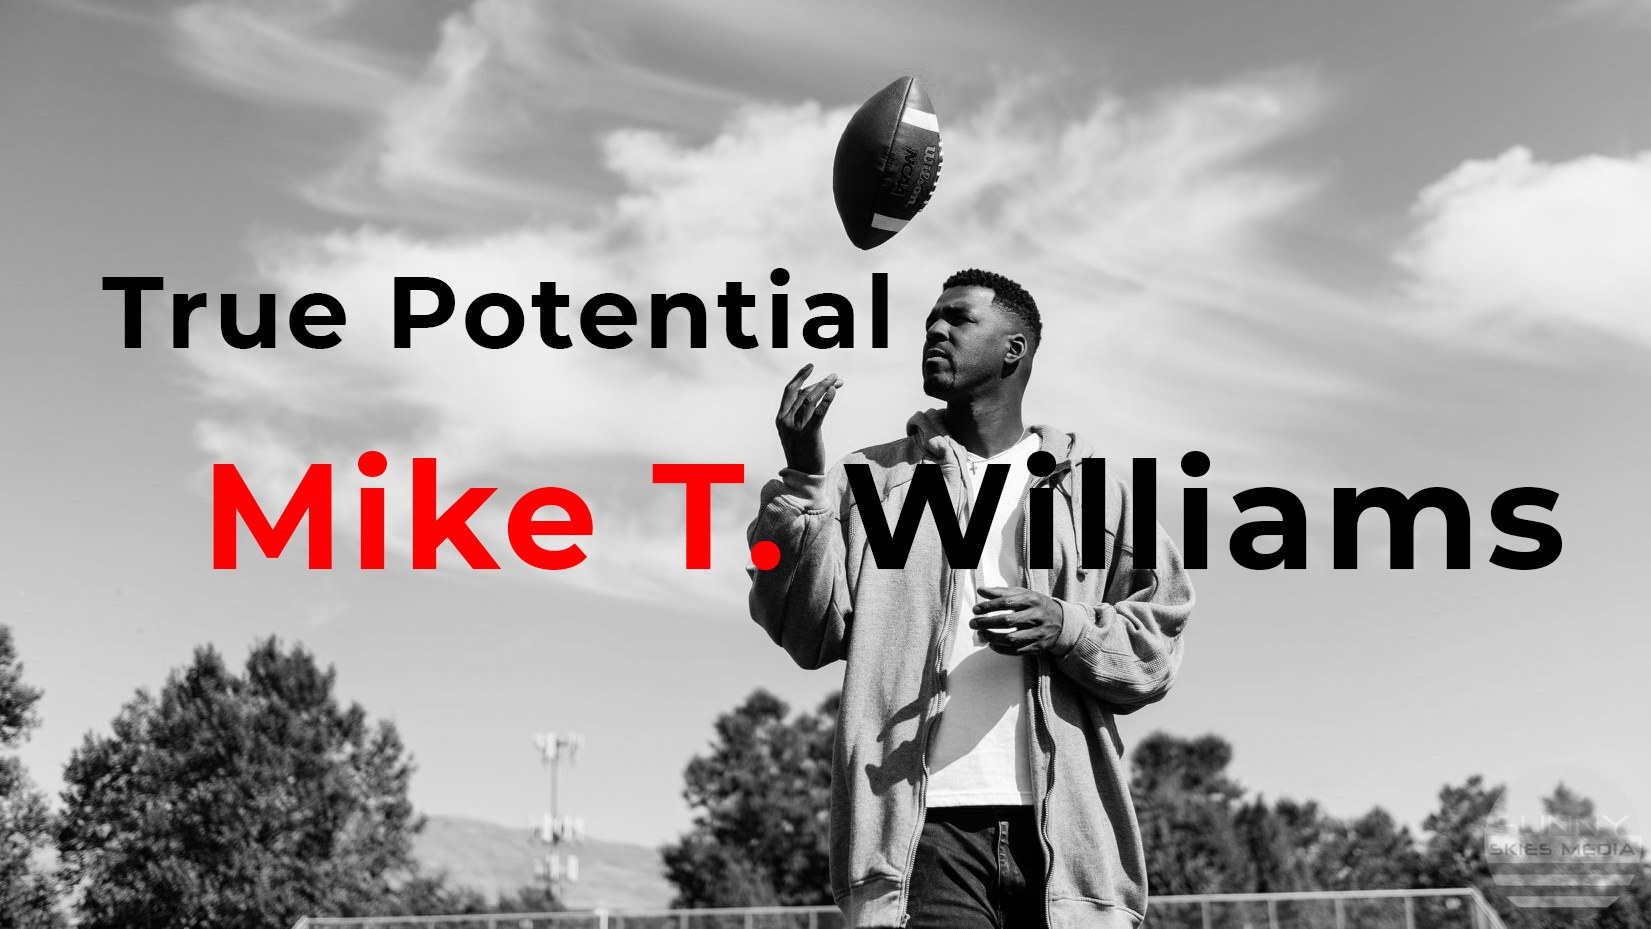 True Potential | The Mike T. Williams Story